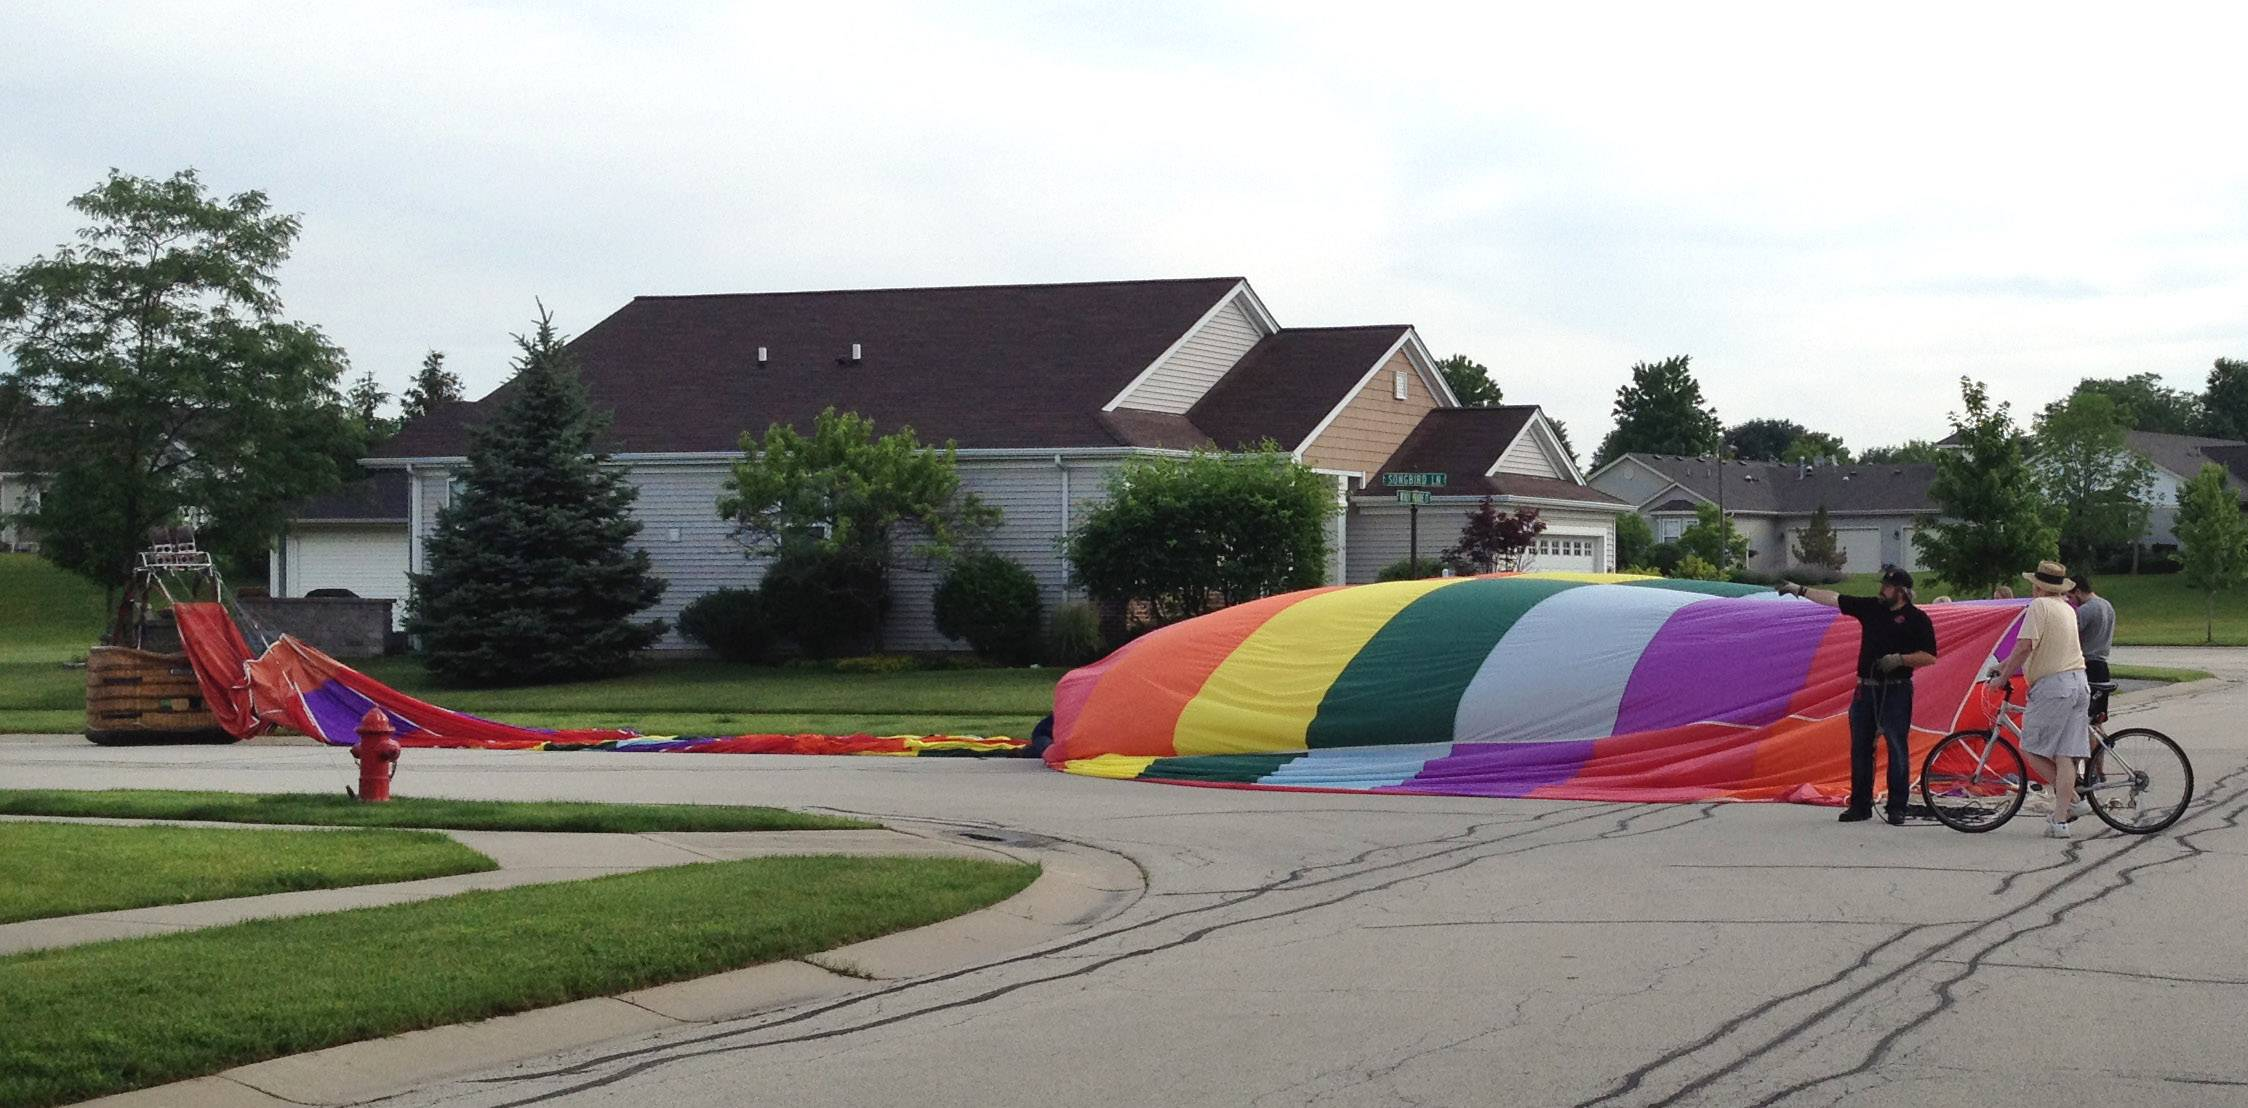 FAA: Hot-air balloon pilot did not violate rules